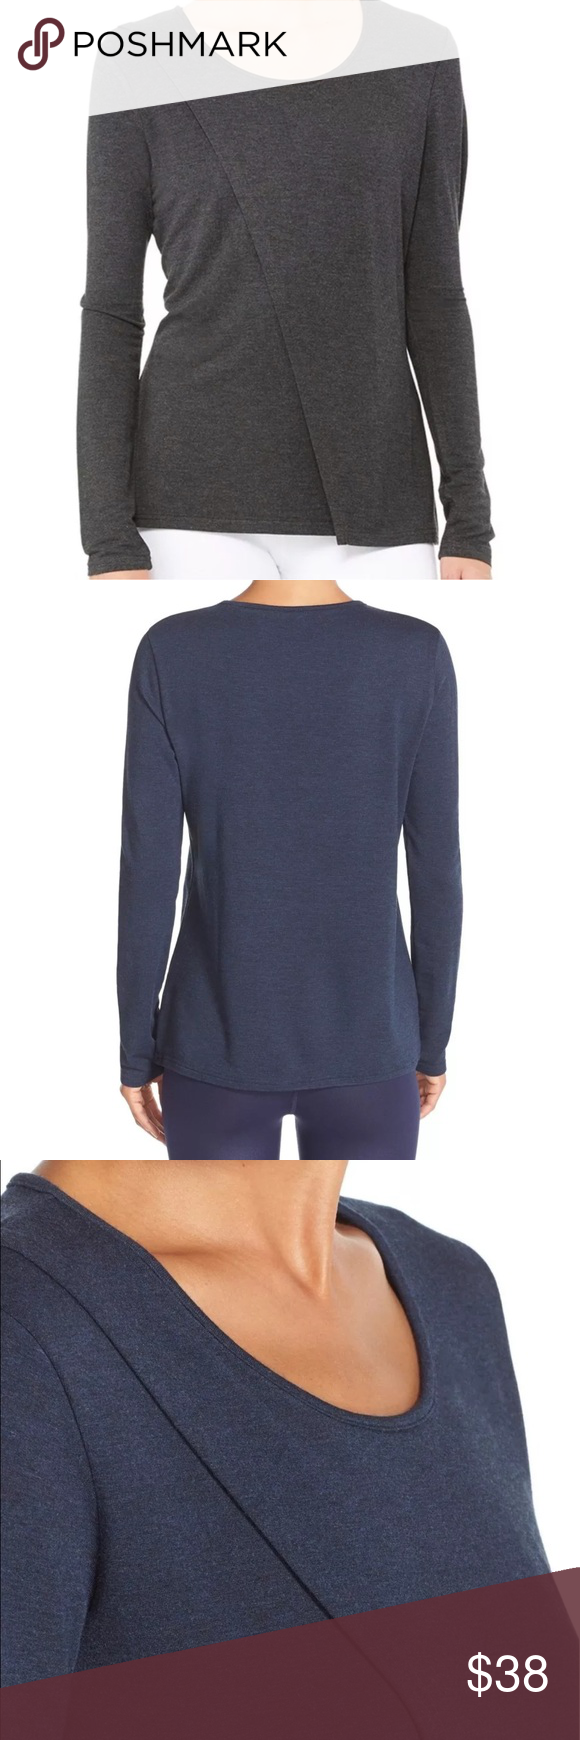 """New Alo Yoga Kira Long Sleeve Top Small Alo Kira Asymmetrical Long Sleeve Top from Nordstrom BRAND NEW WITH TAGS - STILL IN ORIGINAL PACKAGING STYLE: W3216R COLOR: CHARCOAL HEATHER SIZE: SMALL An asymmetrical draped front adds contemporary edge to a flattering, long-sleeve terry top ideal for keeping you cozy before and after your workouts. 26 1/2"""" length (size Medium). 95% rayon, 5% spandex. Machine wash cold, tumble dry low. By Alo; imported. ALO Yoga Tops Tees - Long Sleeve"""